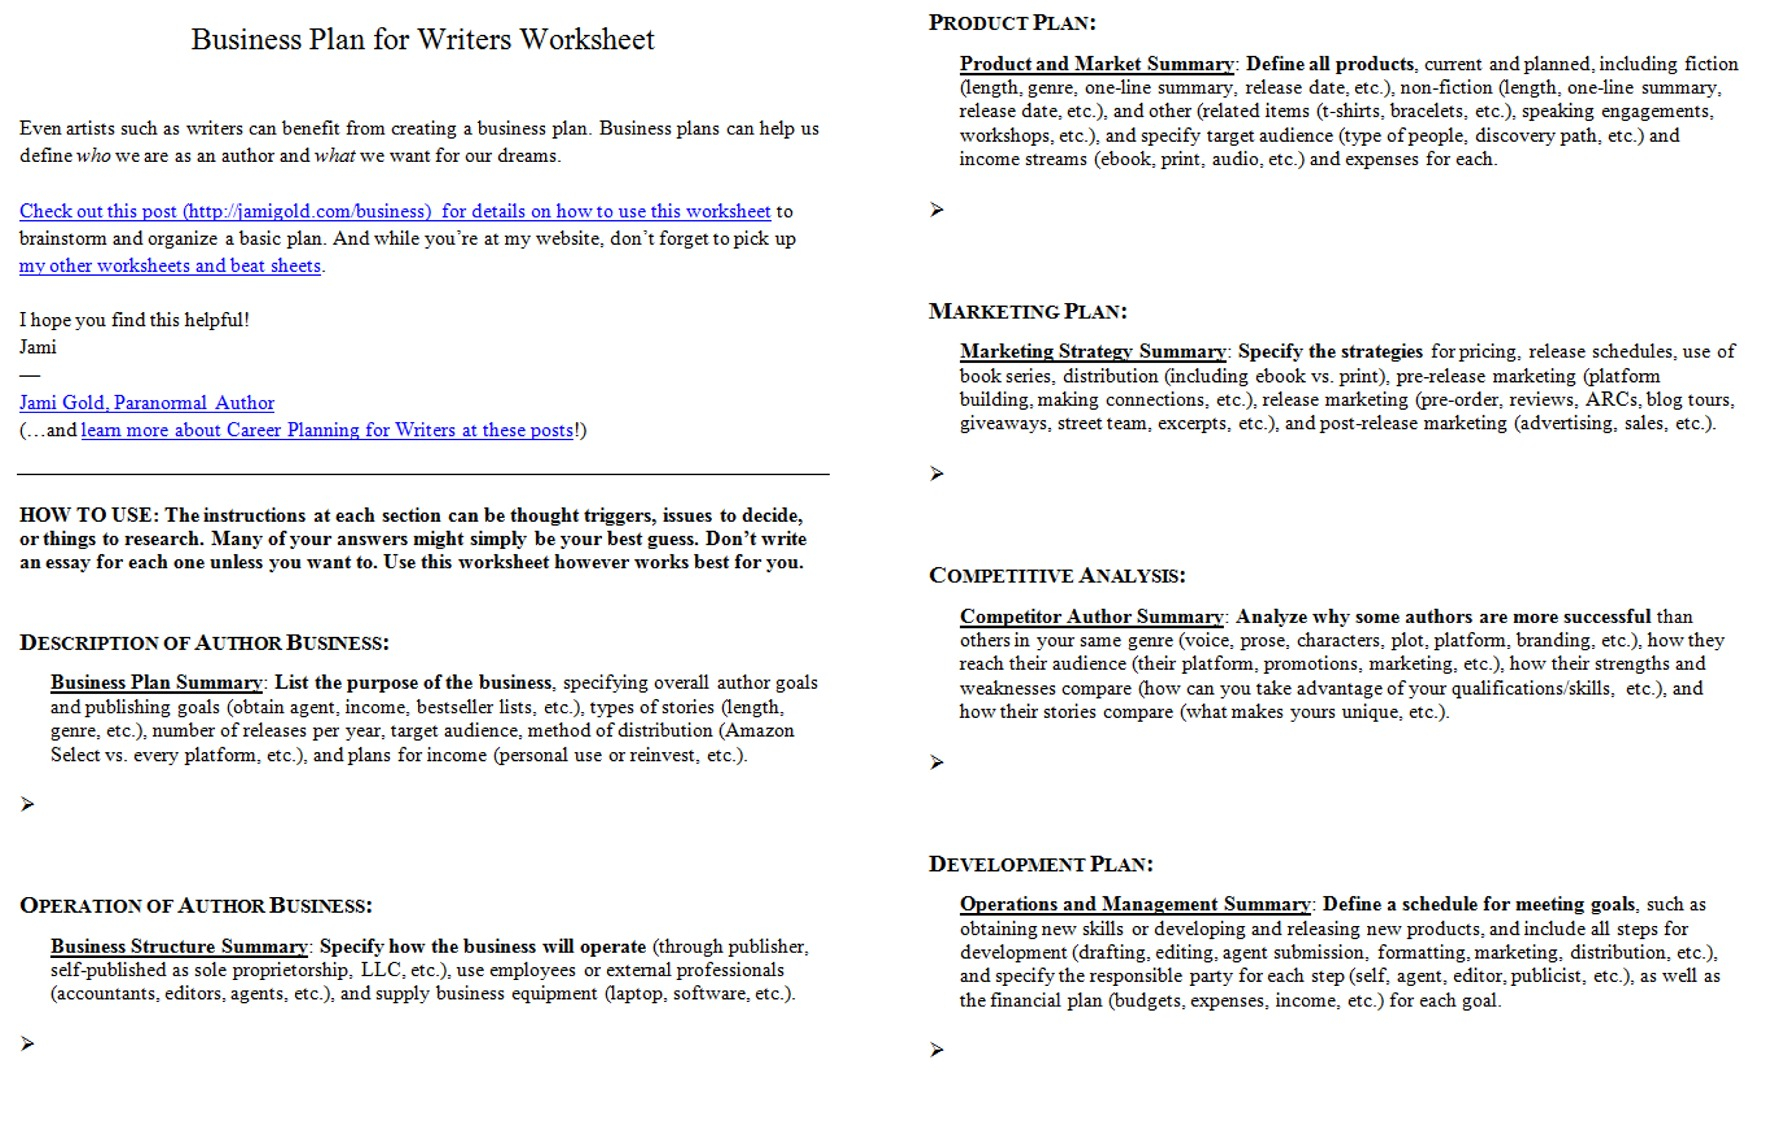 Aldiablosus  Personable Worksheets For Writers  Jami Gold Paranormal Author With Fascinating Screen Shot Of Both Pages Of The Business Plan For Writers Worksheet With Cool Noun Worksheets Grade  Also Nursing Process Worksheet In Addition Multiplying Algebraic Fractions Worksheet And Solving Proportion Worksheets As Well As Notes In Spanish Worksheets Additionally Consonant Blends Worksheets For Grade  From Jamigoldcom With Aldiablosus  Fascinating Worksheets For Writers  Jami Gold Paranormal Author With Cool Screen Shot Of Both Pages Of The Business Plan For Writers Worksheet And Personable Noun Worksheets Grade  Also Nursing Process Worksheet In Addition Multiplying Algebraic Fractions Worksheet From Jamigoldcom